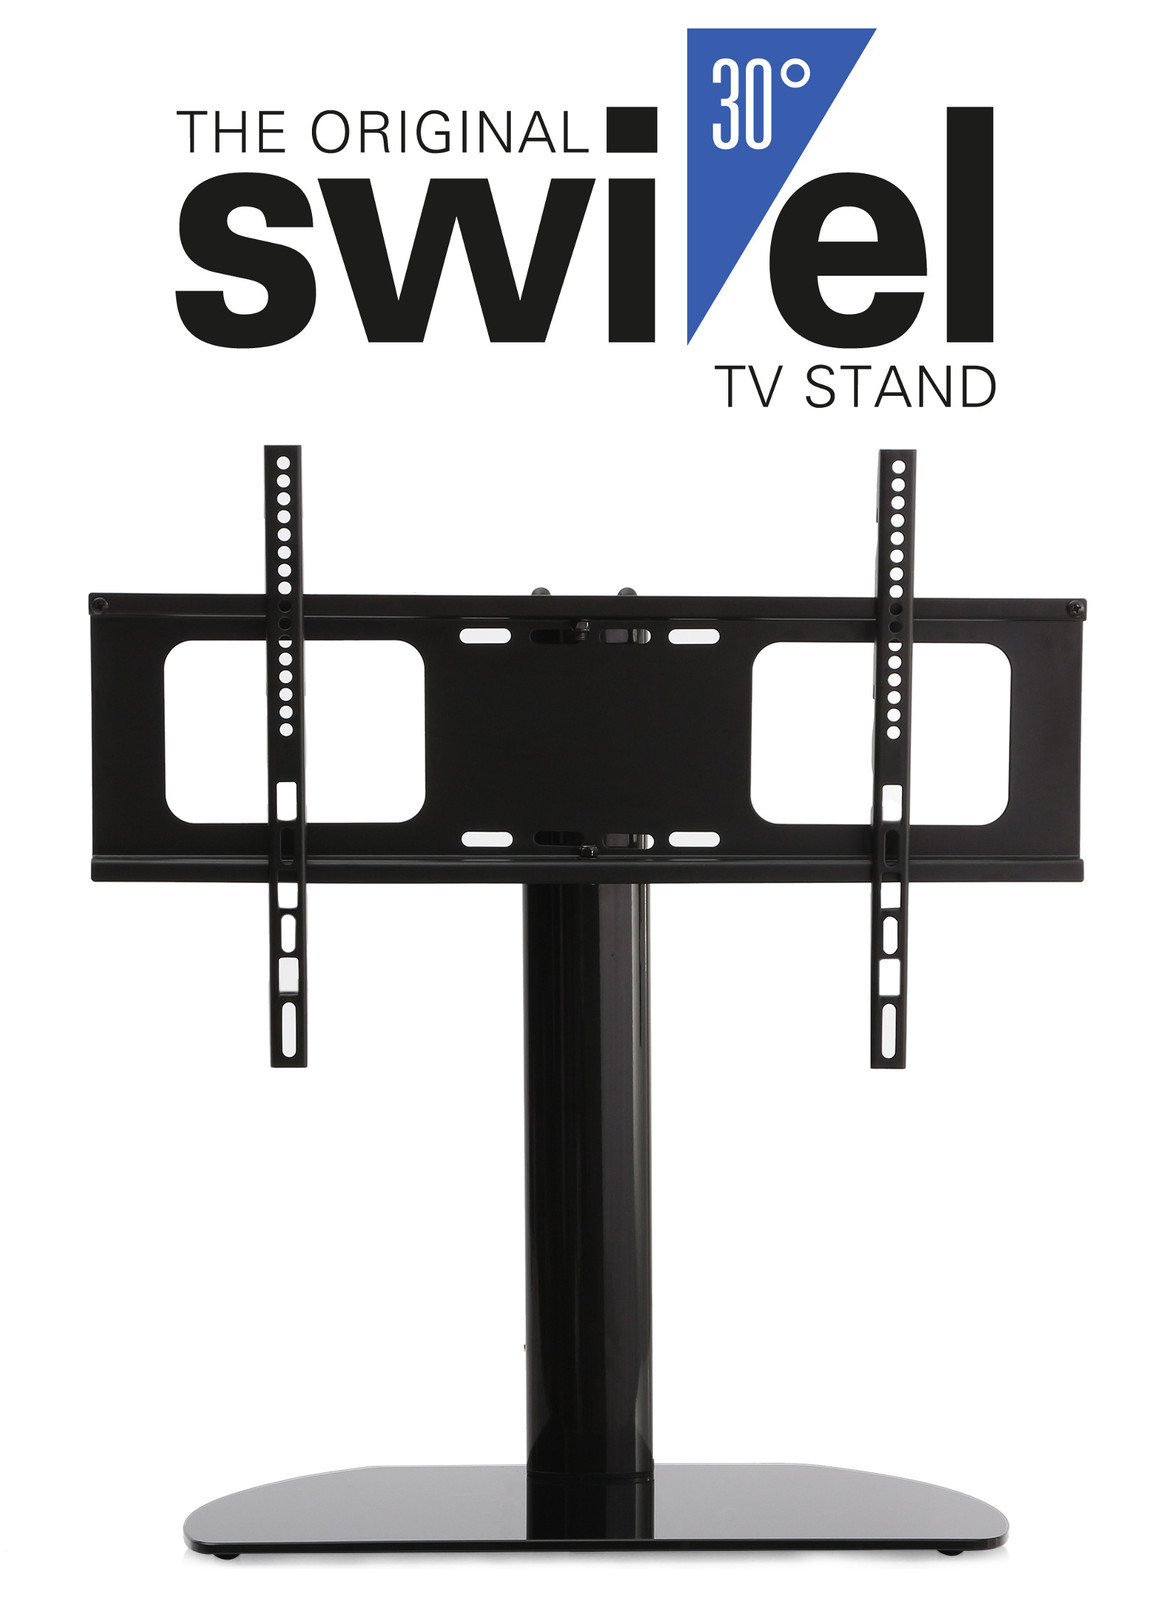 New Universal Replacement Swivel TV Stand/Base for Vizio D500i-B1